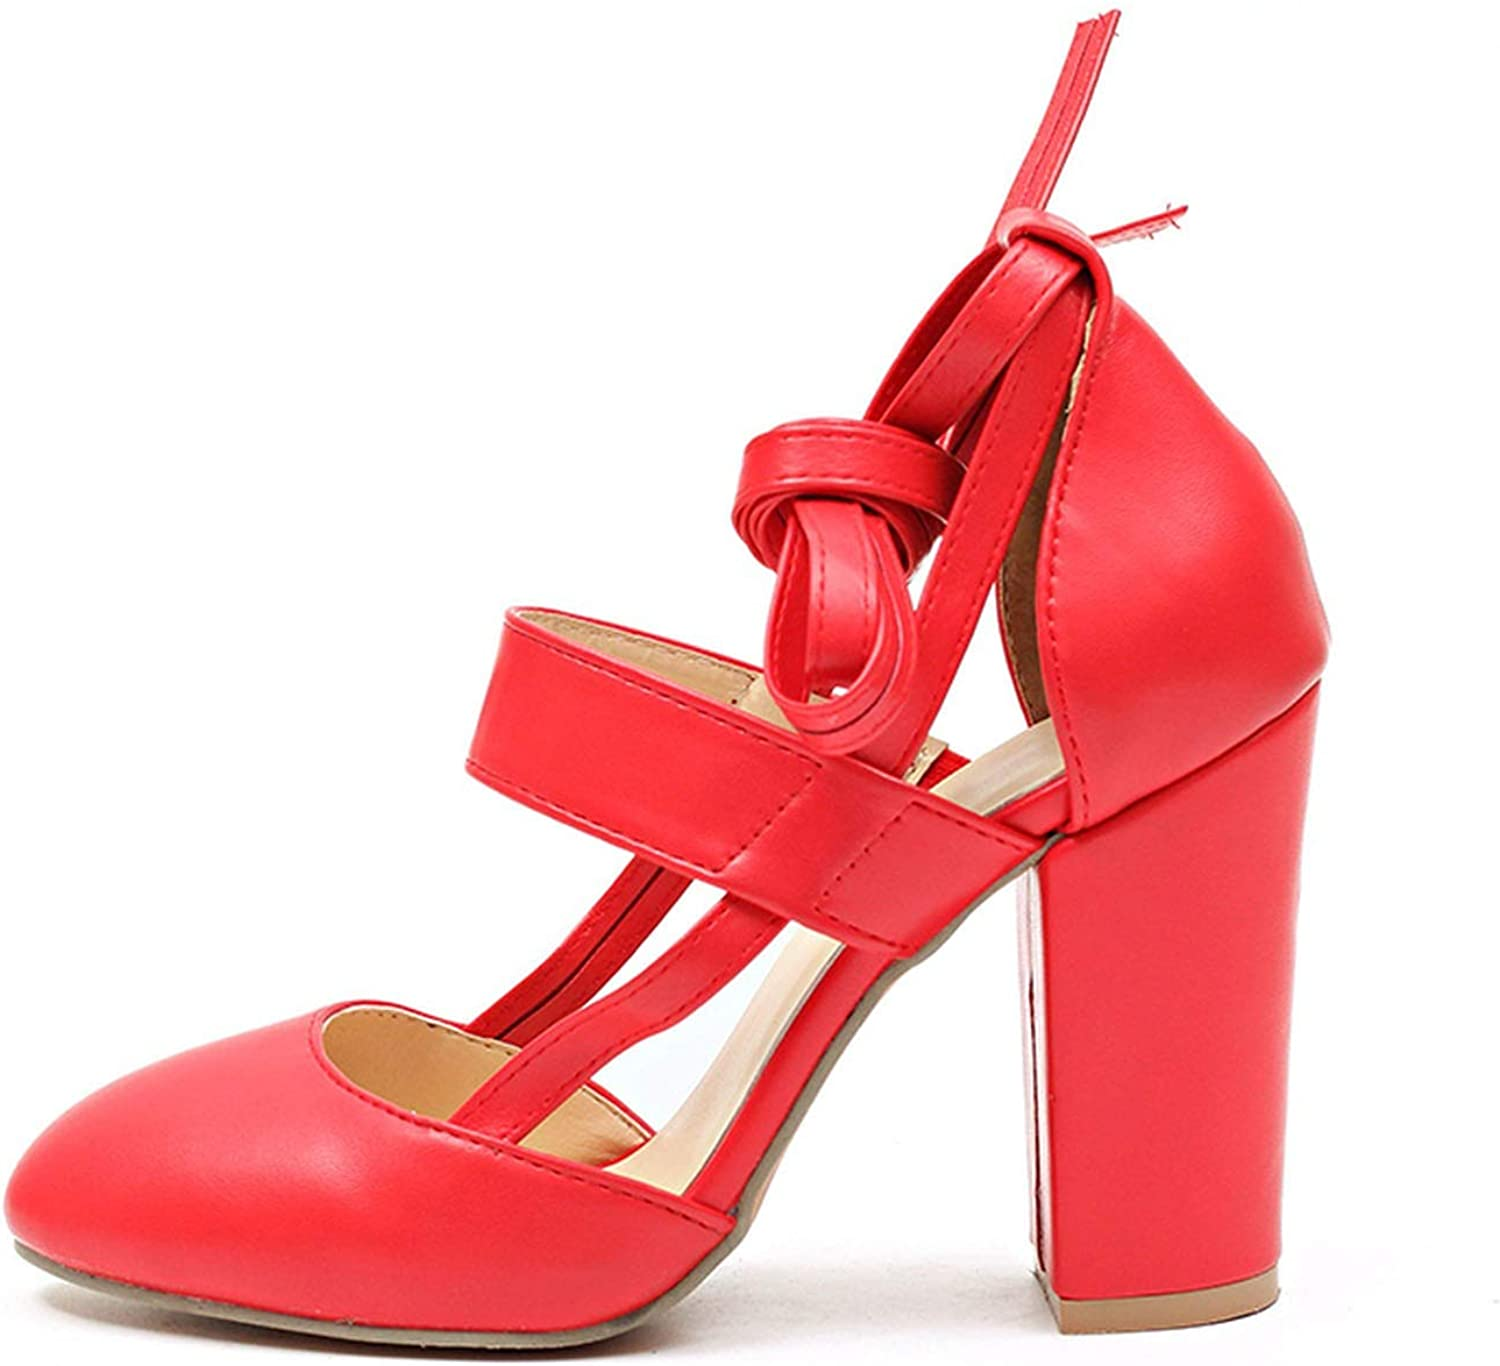 Monica's house Plus Size Female Ankle Strap High Heels shoes Thick Heel for Women Party Wedding,Red-D2314,10.5